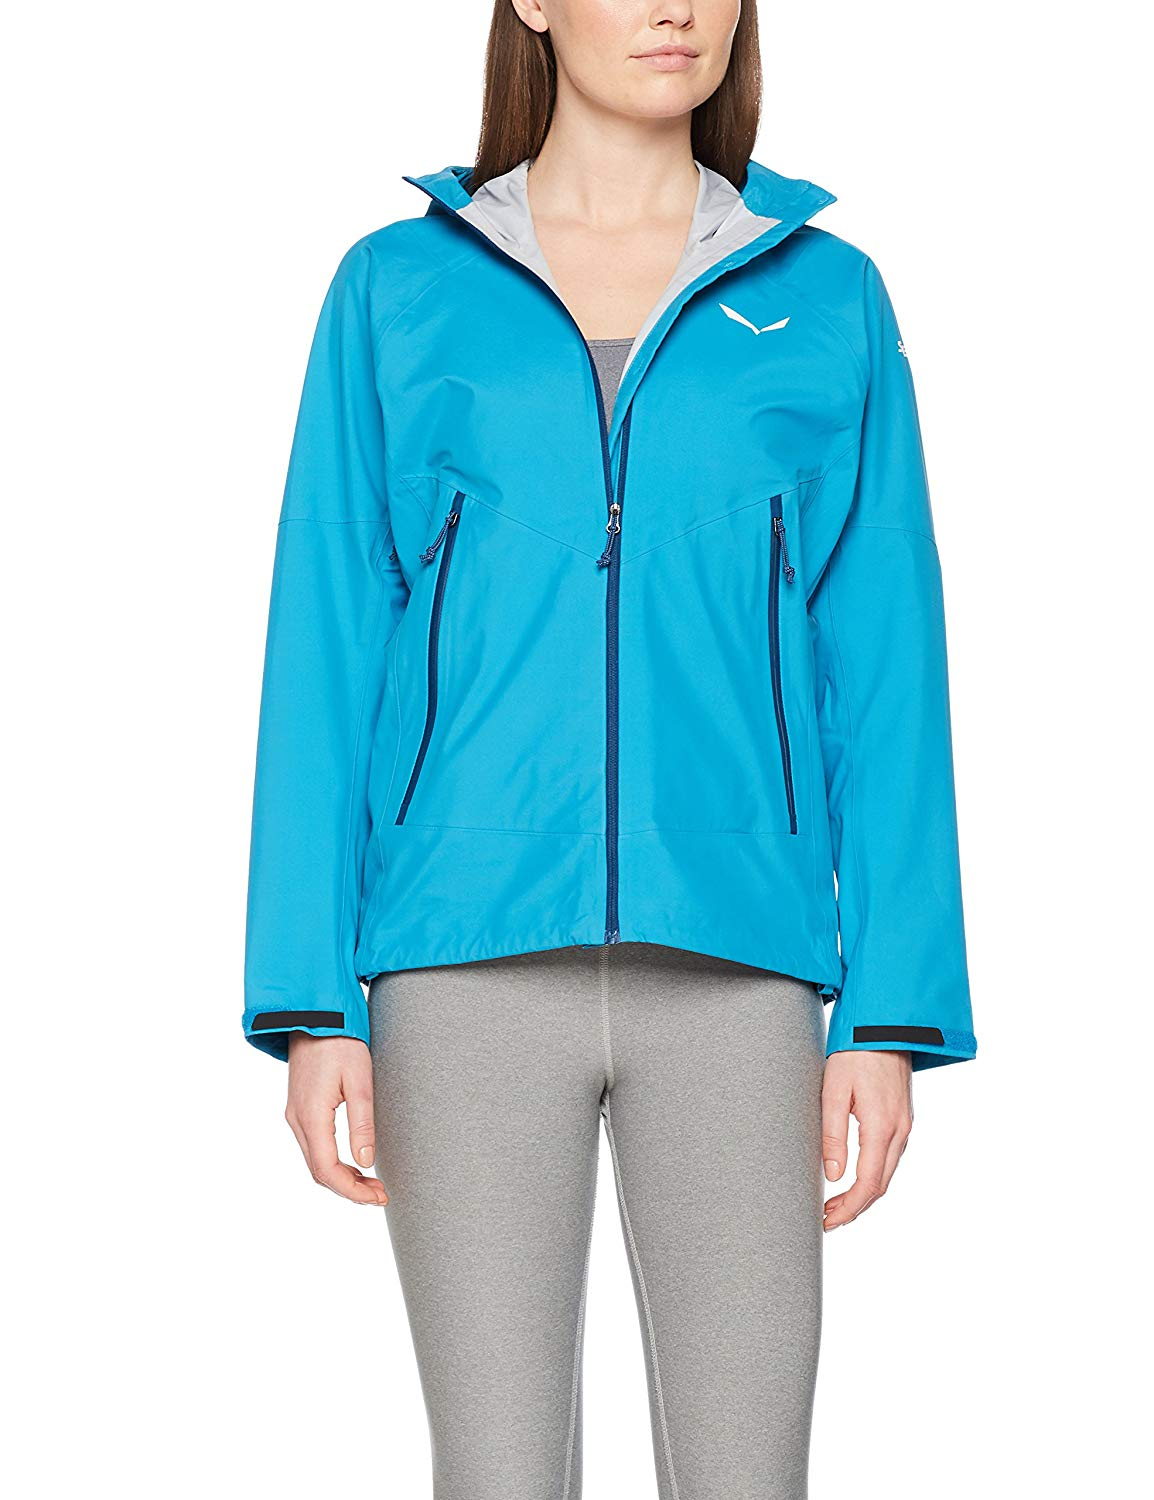 Salewa Damen Sesvenna Softshell Jacke - blue caneel bay - 42